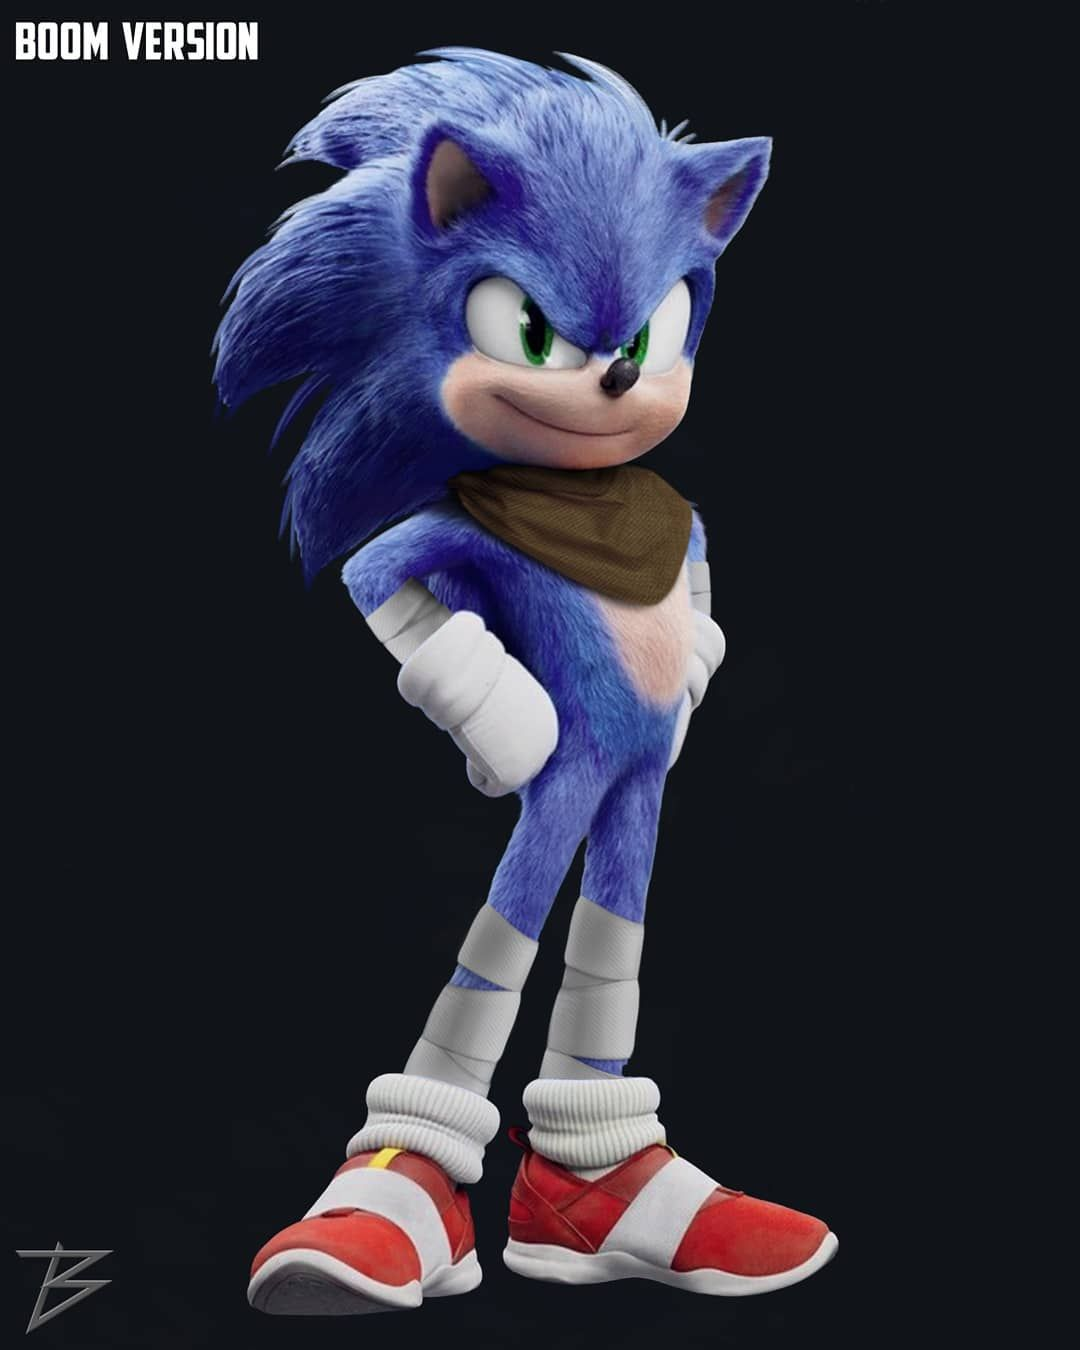 Bɪʟʟʏ On Instagram Edit Of Sonic Live Action 2020 16 Boom Version Billywhodraw Edited In 2020 Sonic The Movie Sonic Sonic Boom